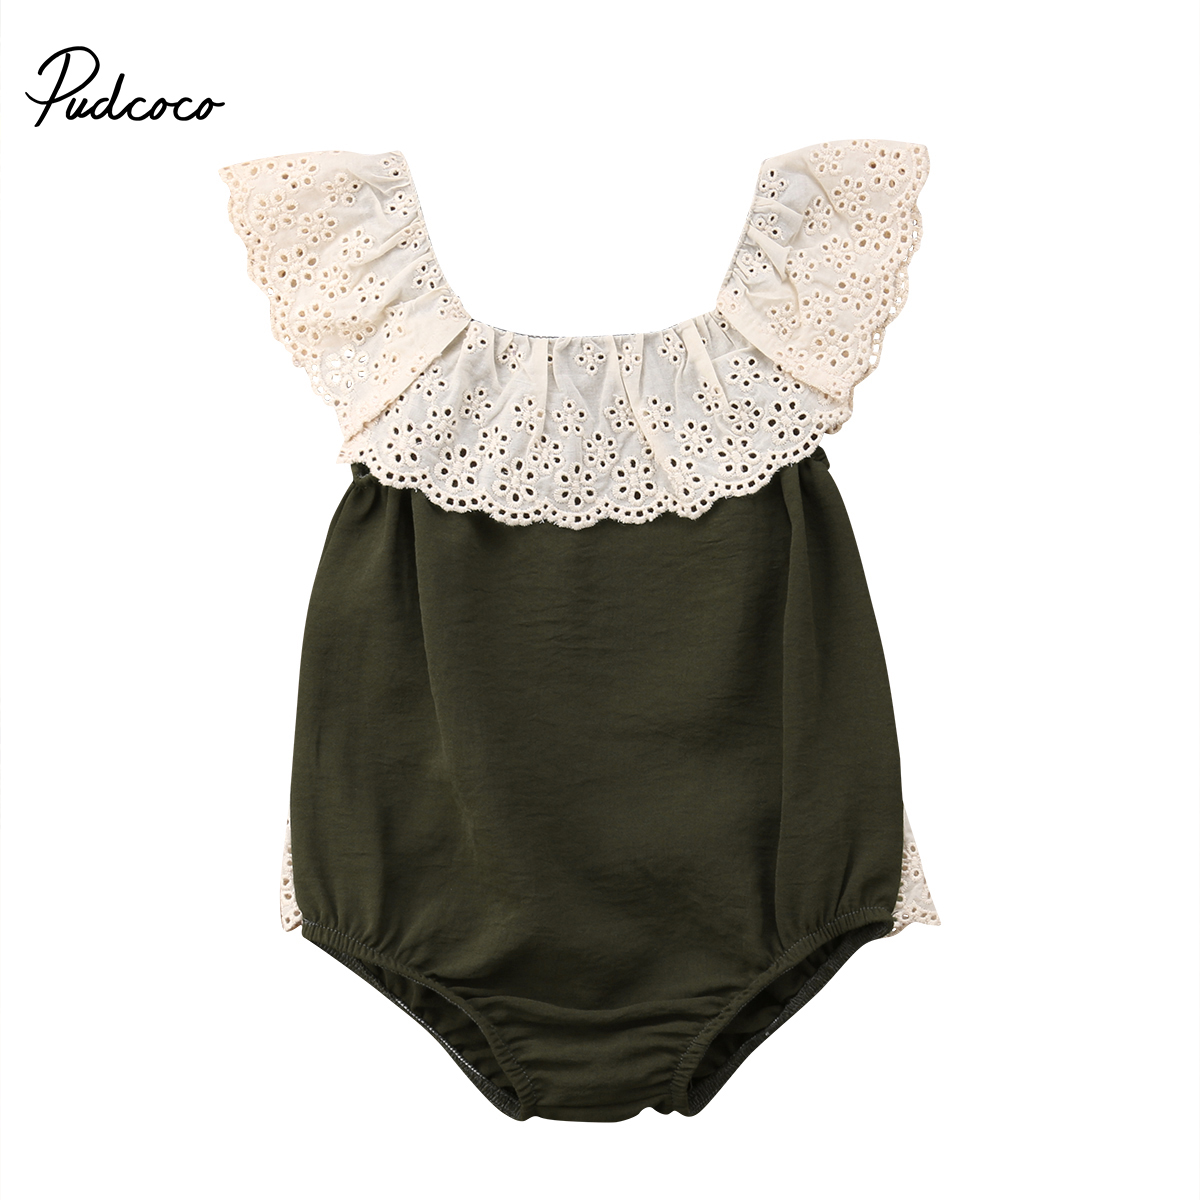 Pudcoco 2018 Todder Infant Baby Girl Kid Jumpsuit Bodysuit Lace Rim Patchwork Sleeveless Square Collar Outfits Clothes New